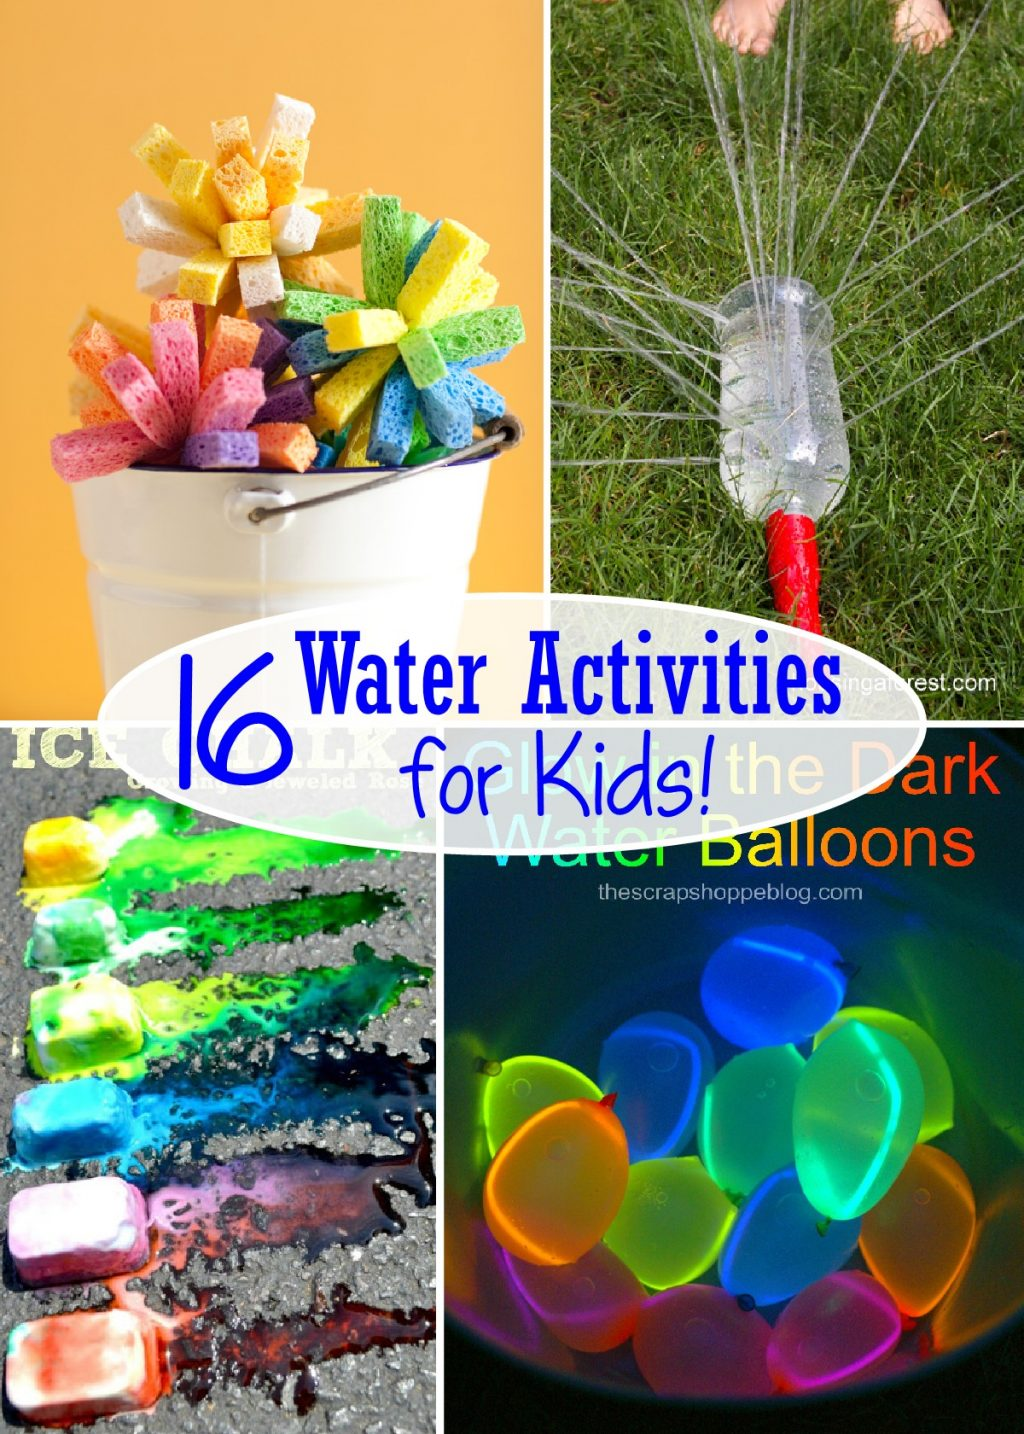 16 Water Activities for Kids - The Scrap Shoppe